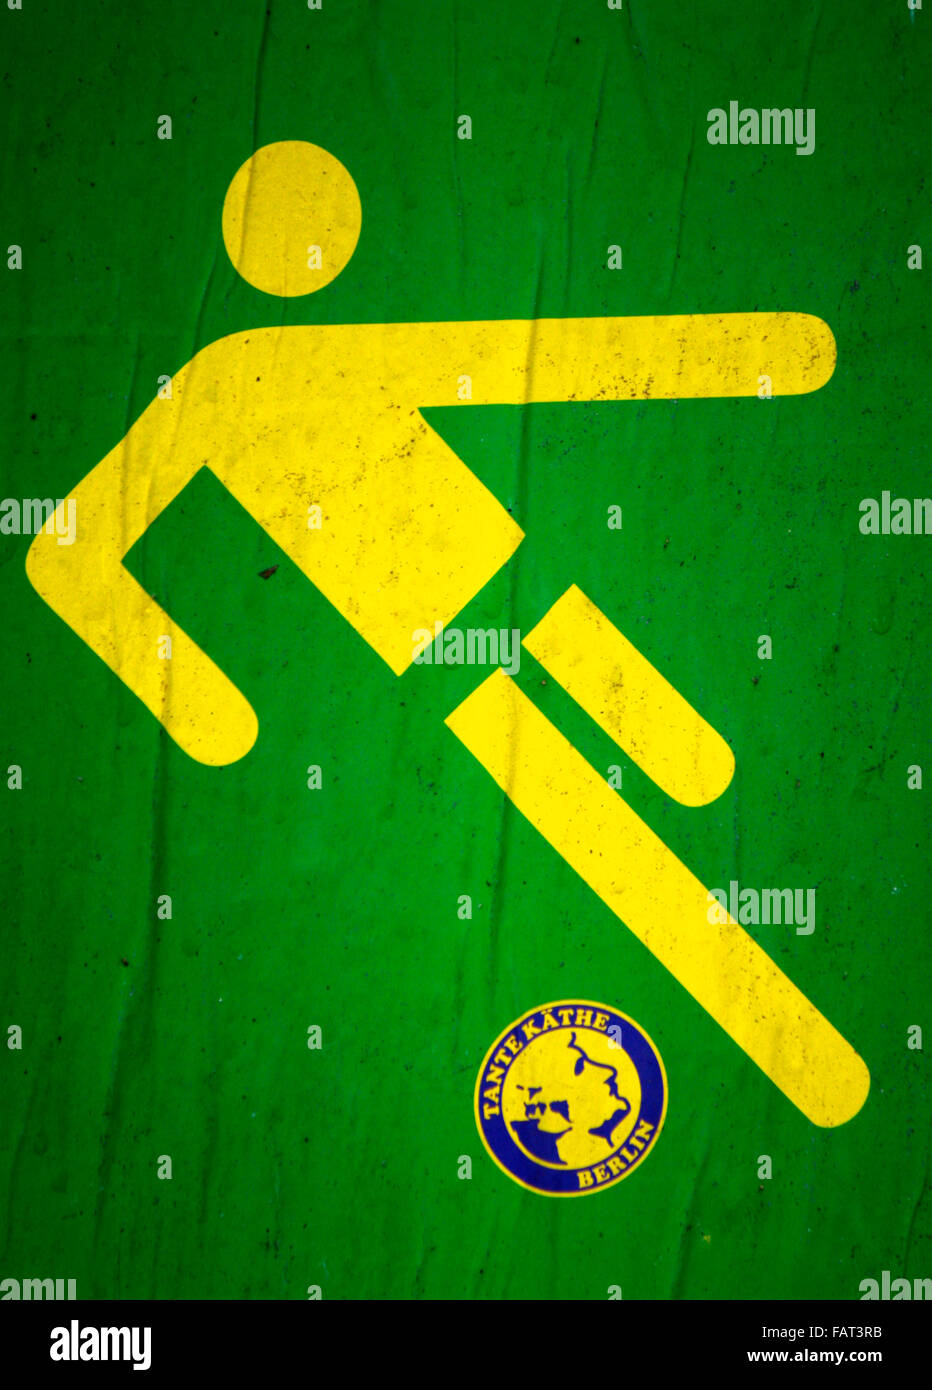 "Fussball Logo ""Tante Kaethe"", Berlin. Stock Photo"